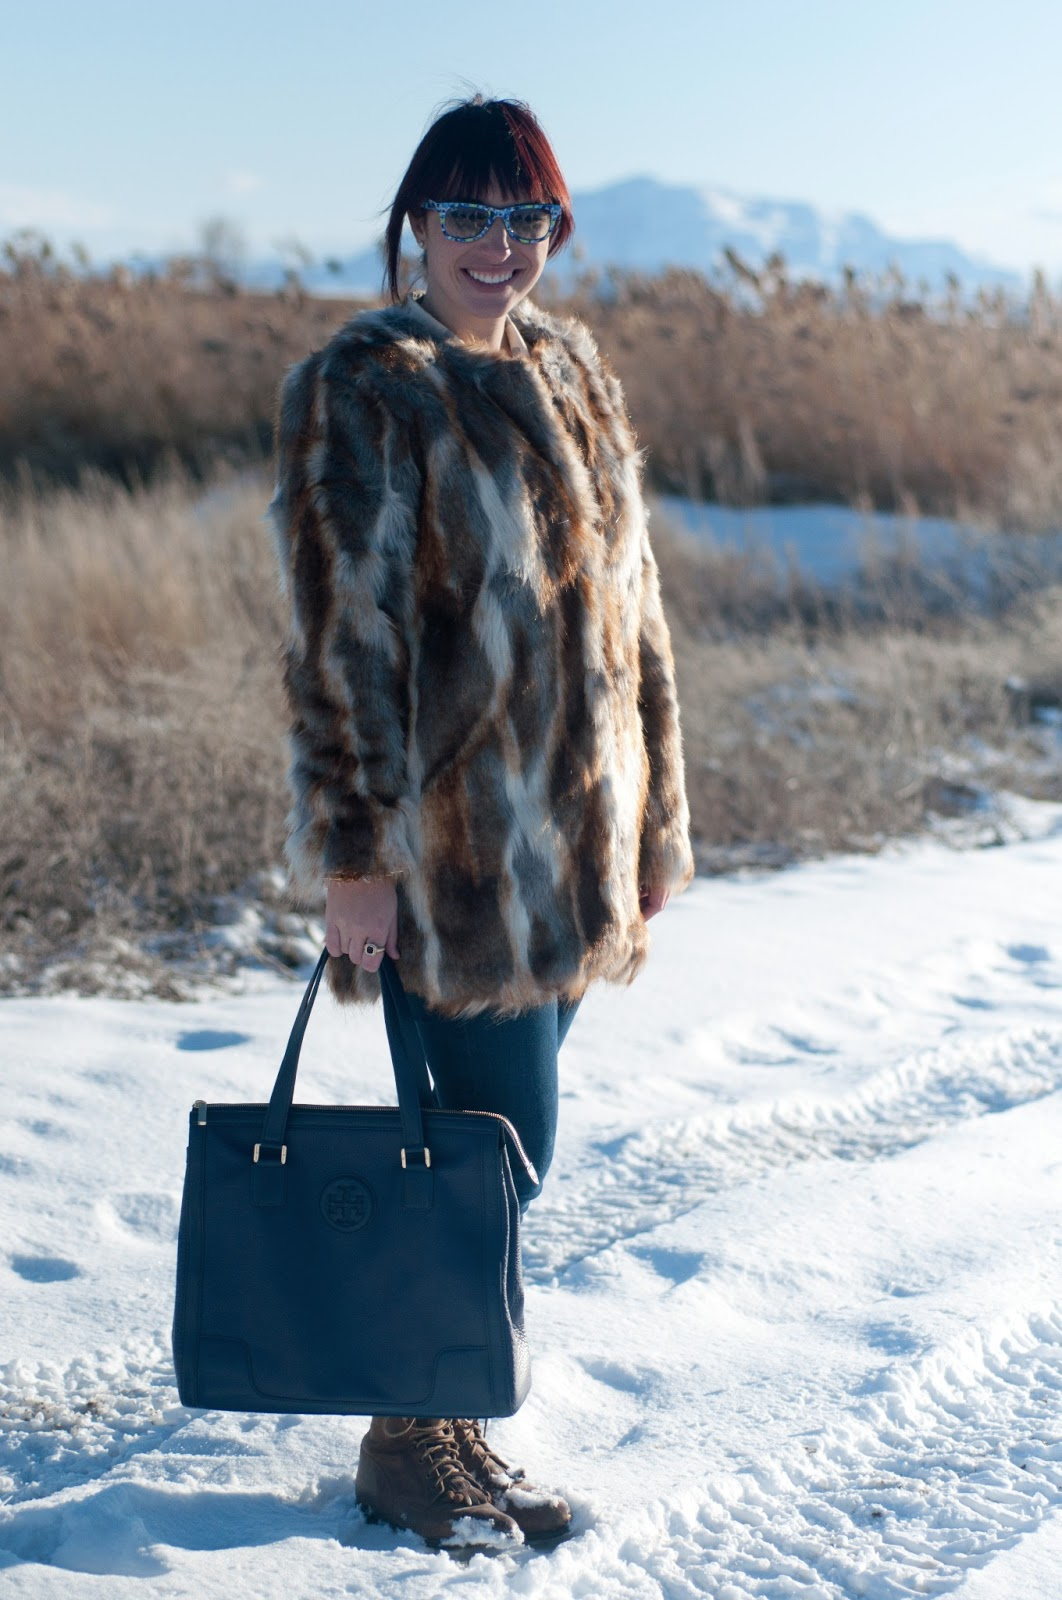 fashion blog, fashion blogger, style blog, mens fashion blog, mens style blog, womens fashion blog, anthropolgie ootd, ootd, ootd blog, mens style, floral, ray ban, floral ray bans, rayban wayfer, faux fur, asos, tory burch, boots, steven madden boots, tory burch purse,